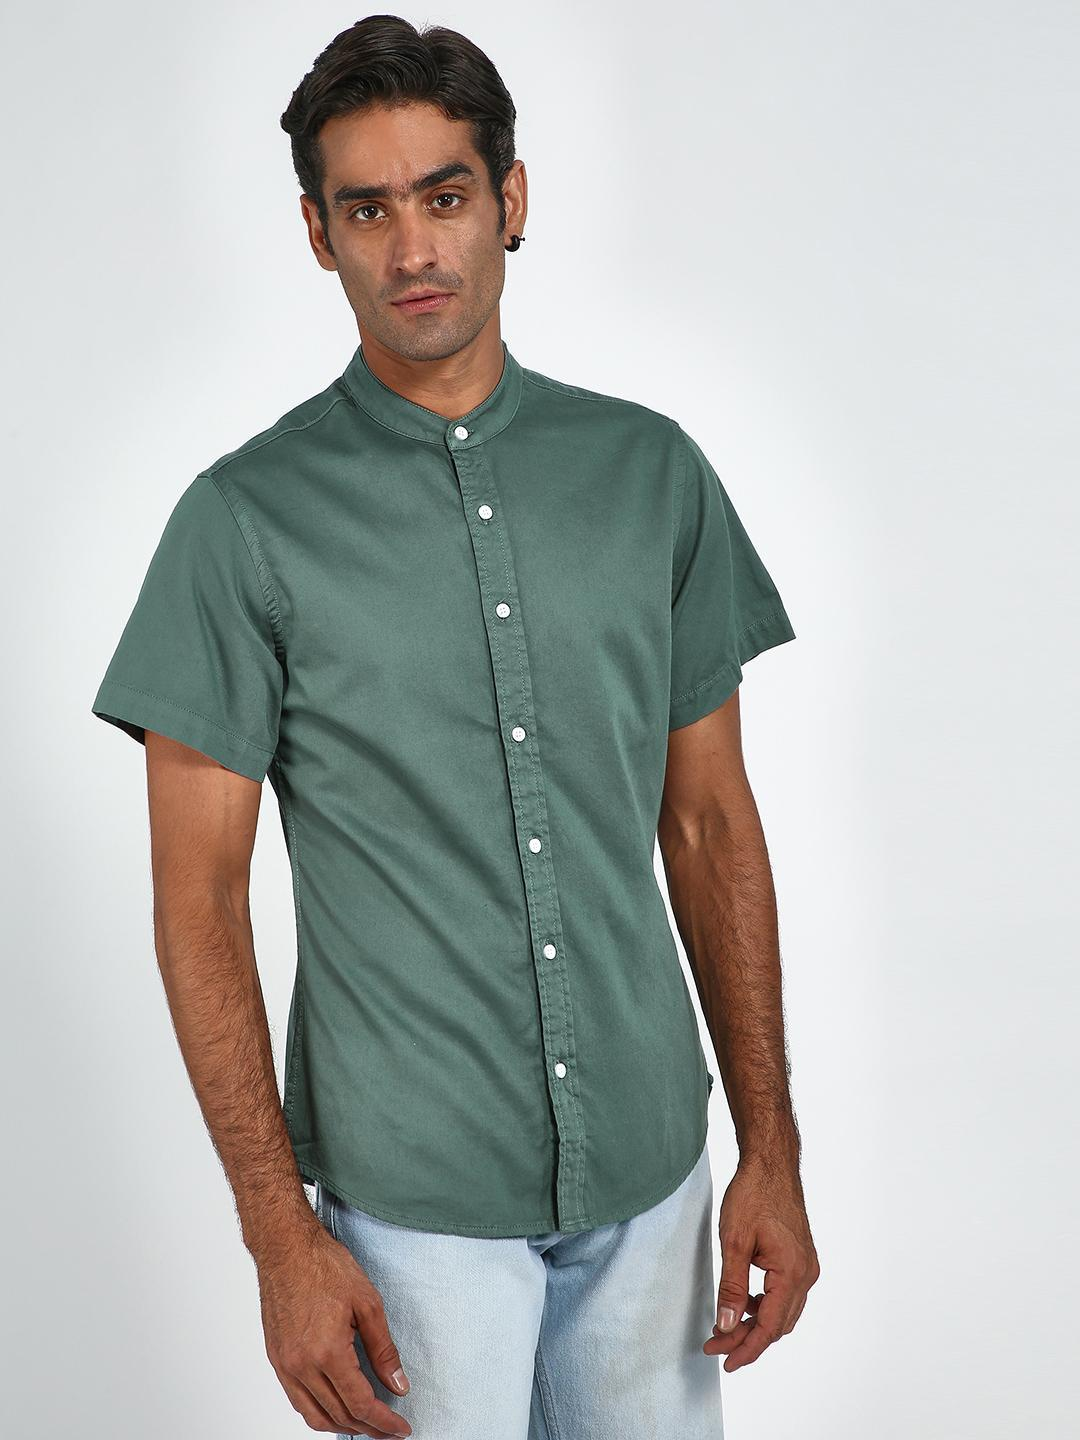 Blue Saint Green Mandarin Collar Short Sleeve Shirt 1